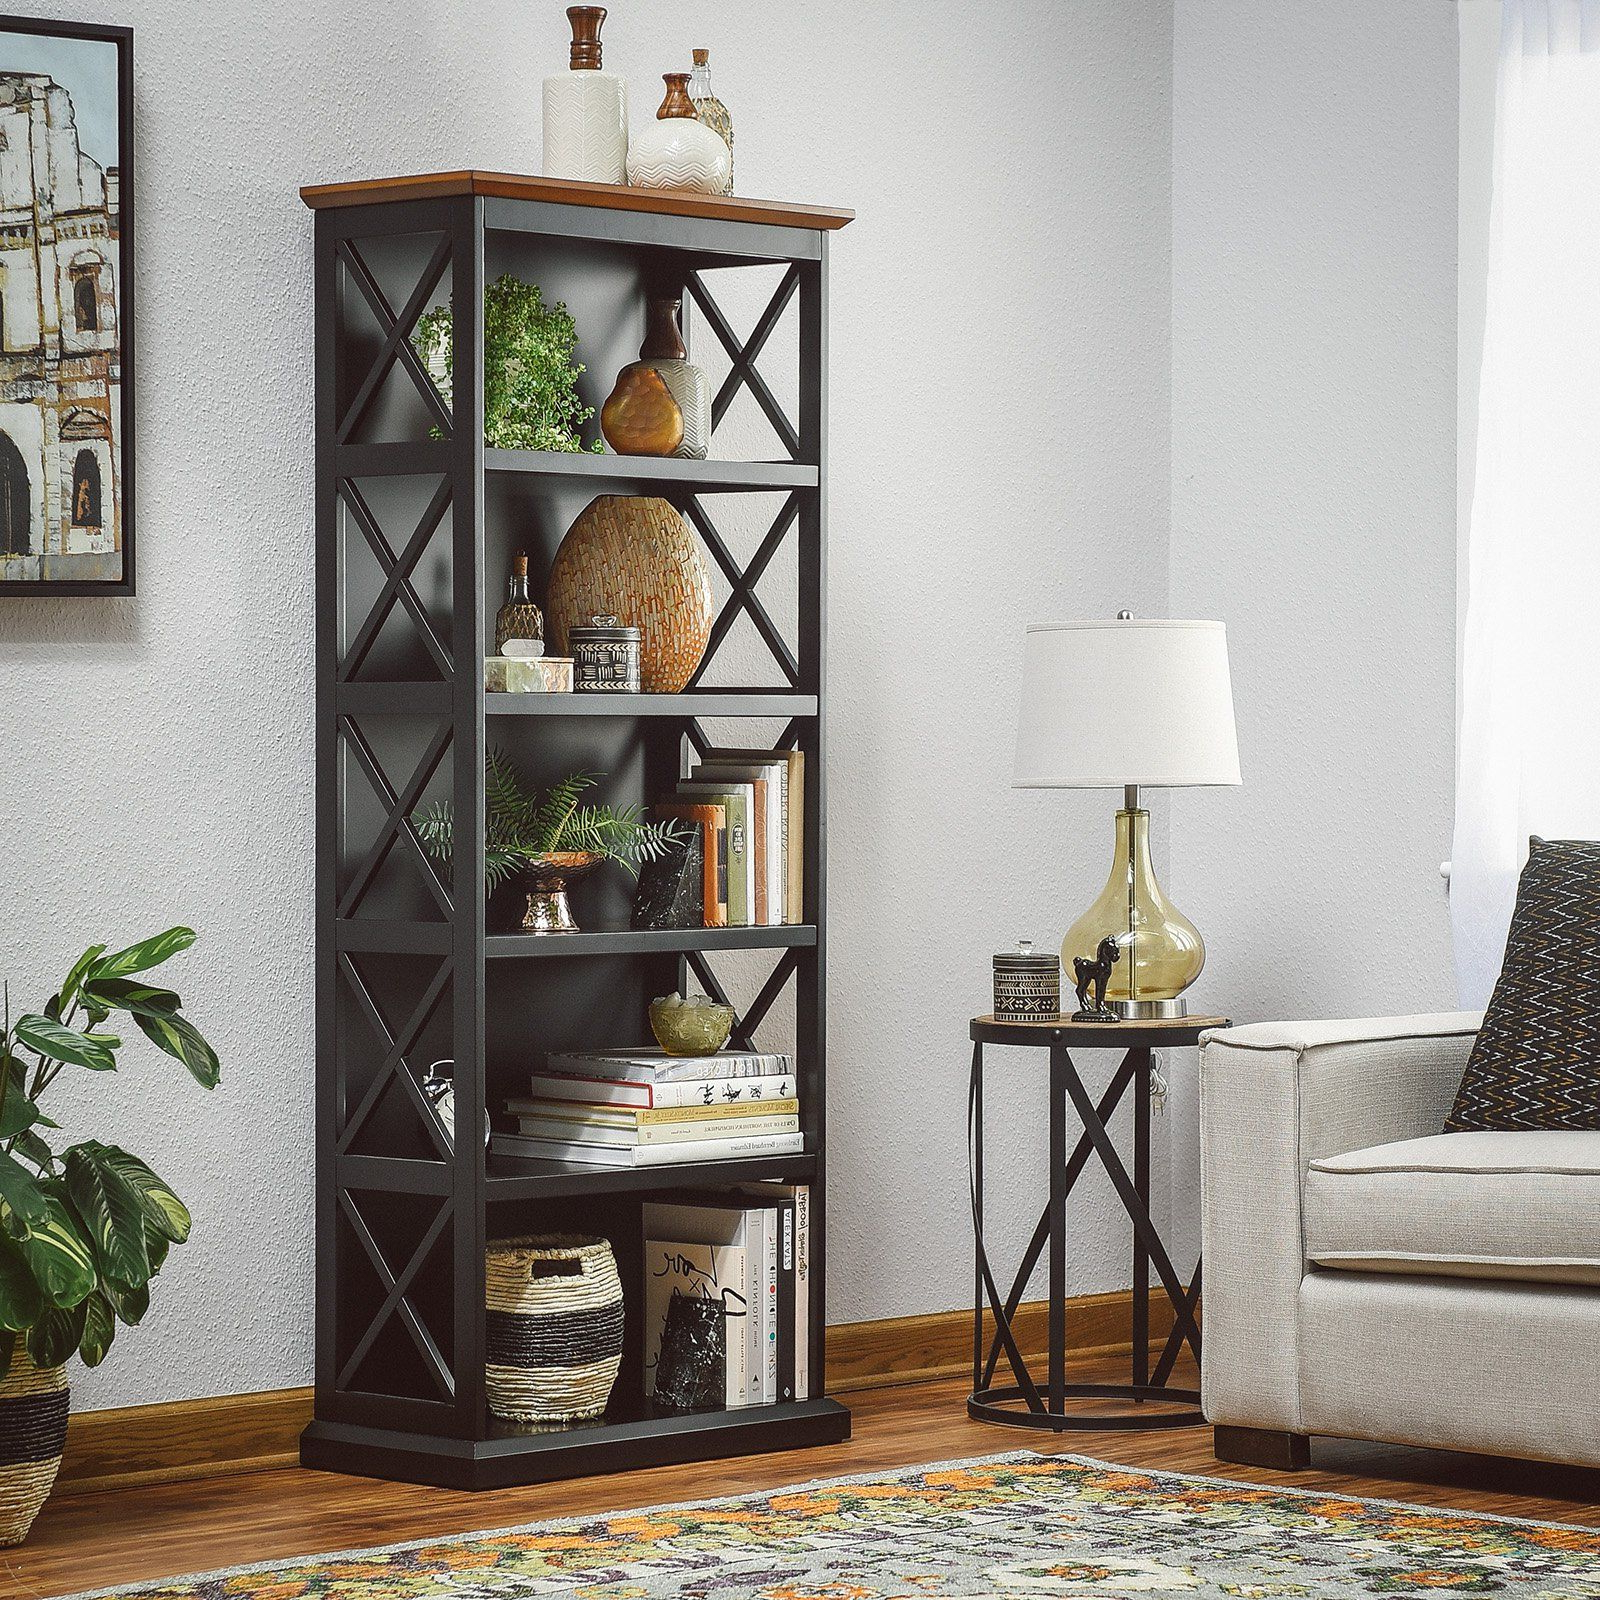 Morrell Standard Bookcases Regarding Most Up To Date Belham Living Hampton 5 Tier Bookcase – Black/oak In  (View 10 of 20)